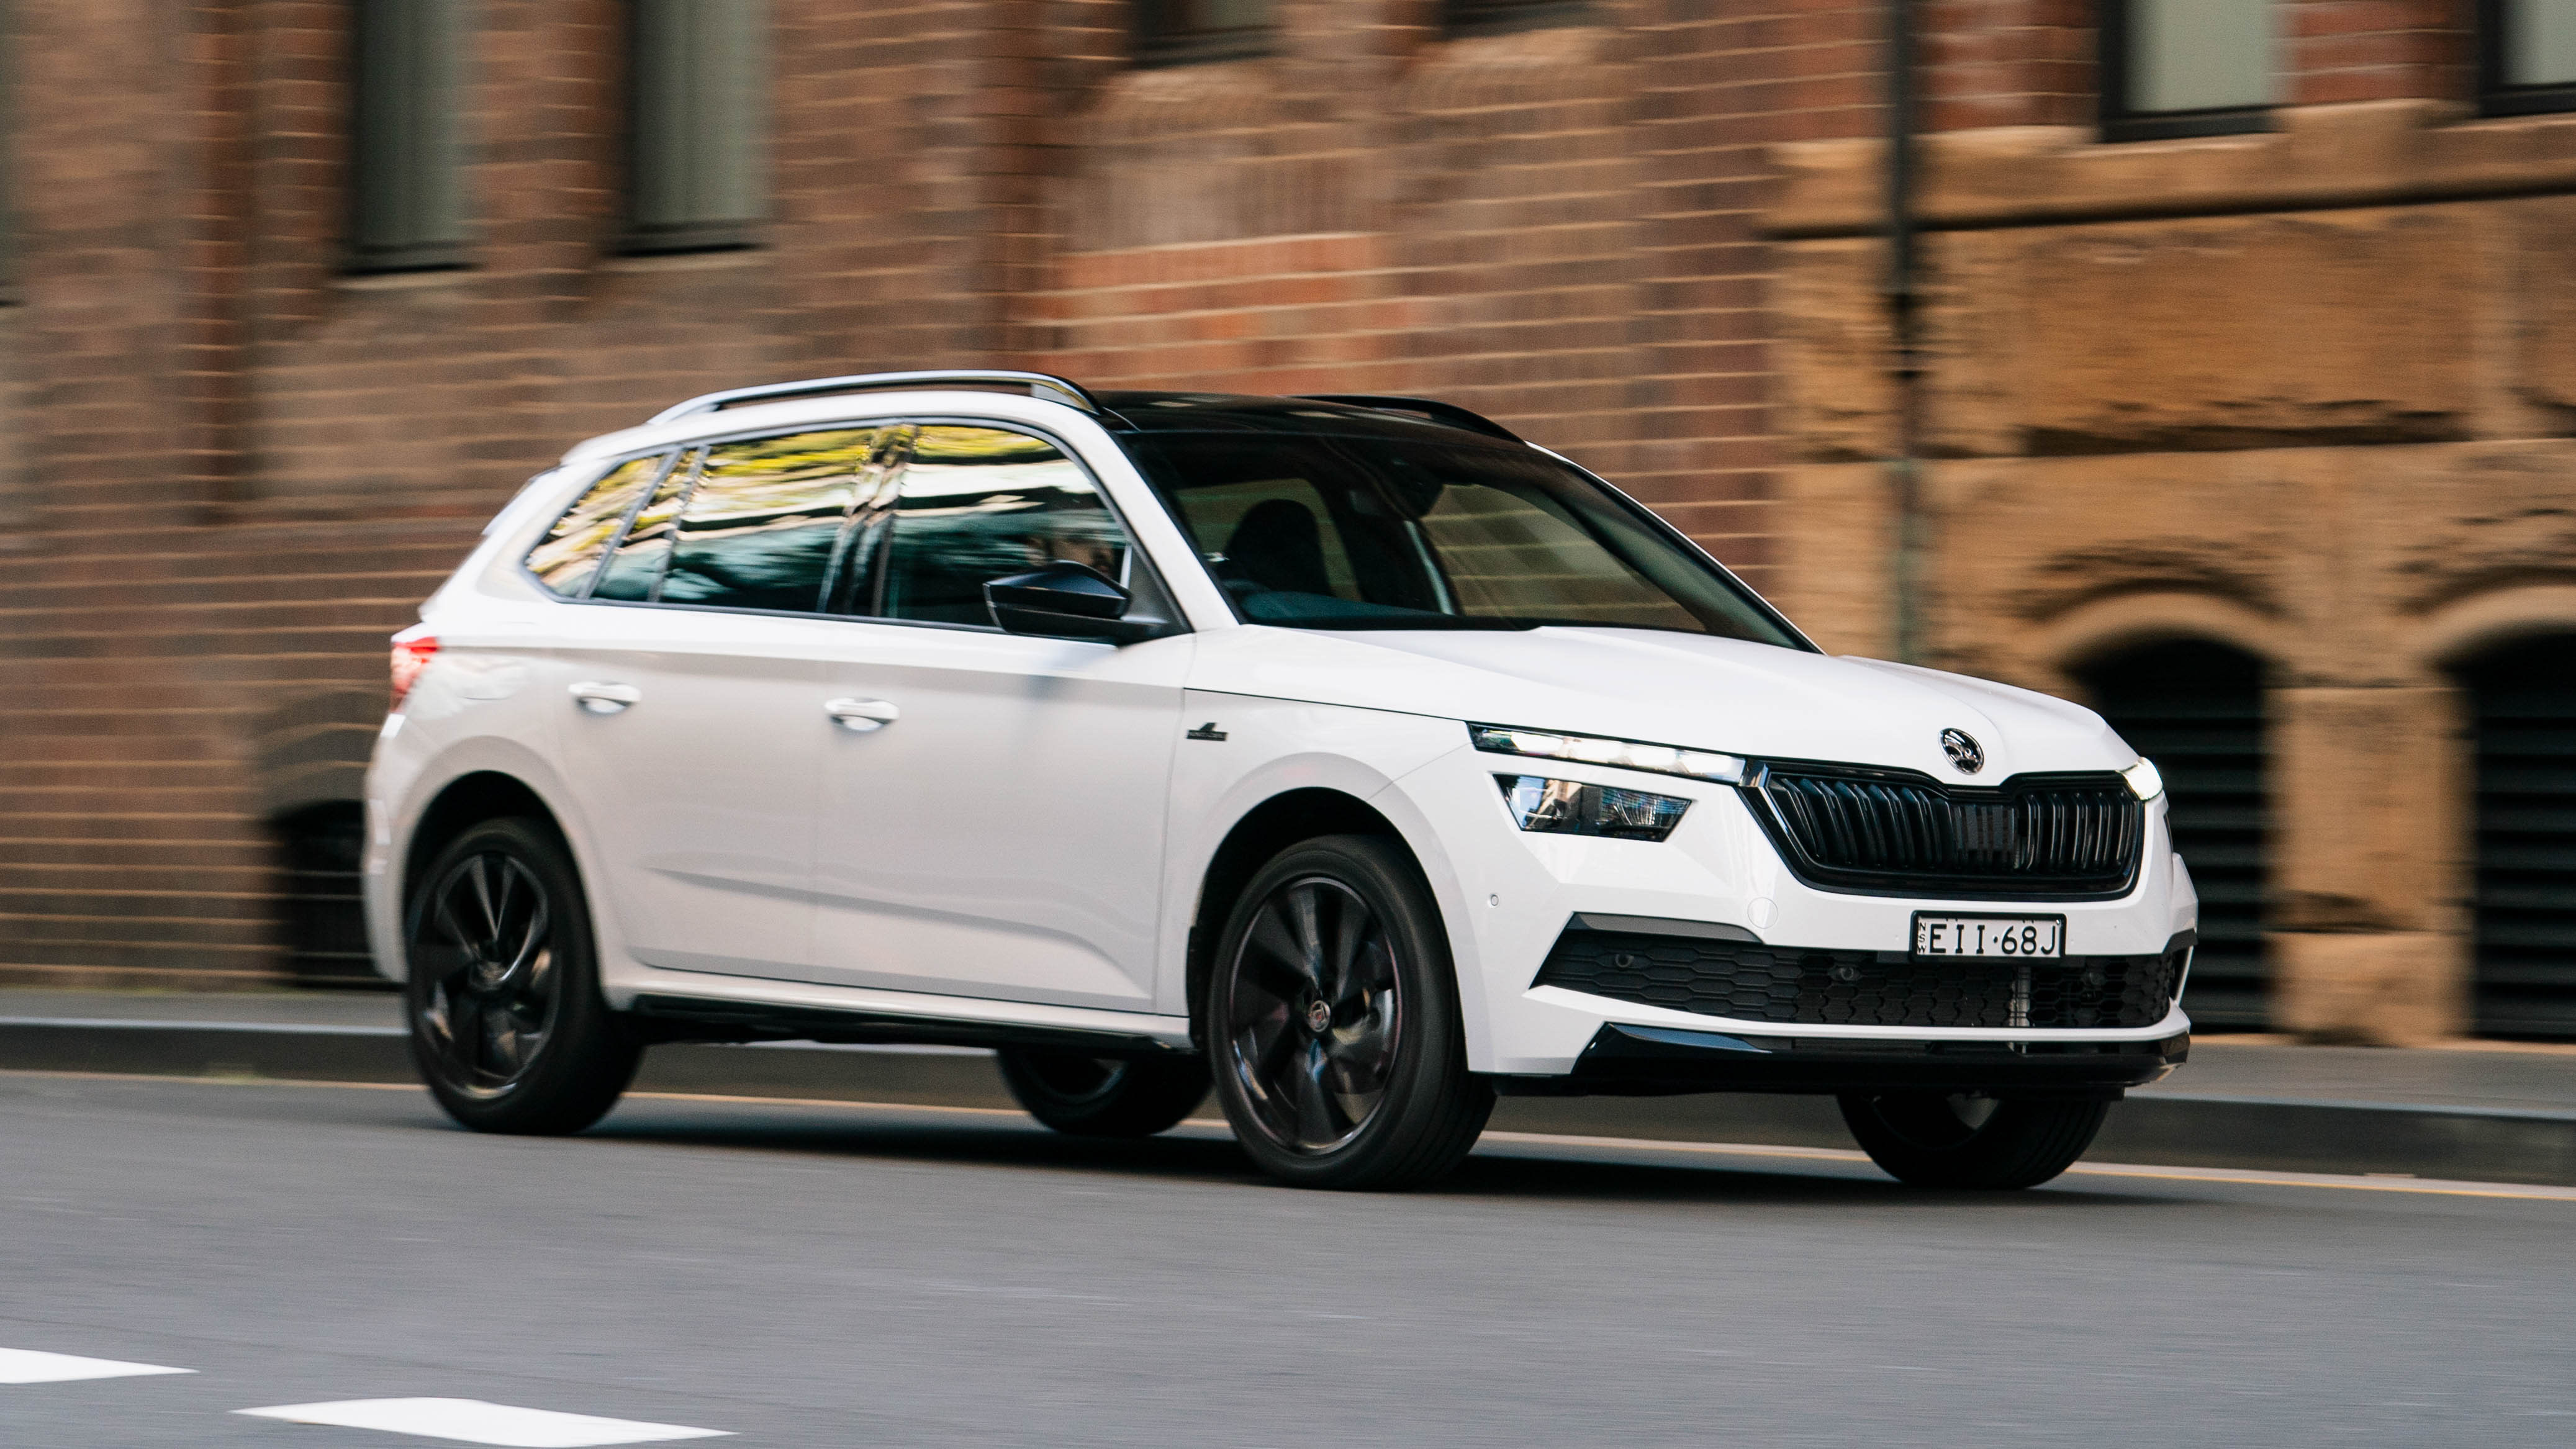 2021 Skoda Scala And Kamiq 110tsi Delayed Update Stop Sale Lifted Vehicles Now On Sale Caradvice